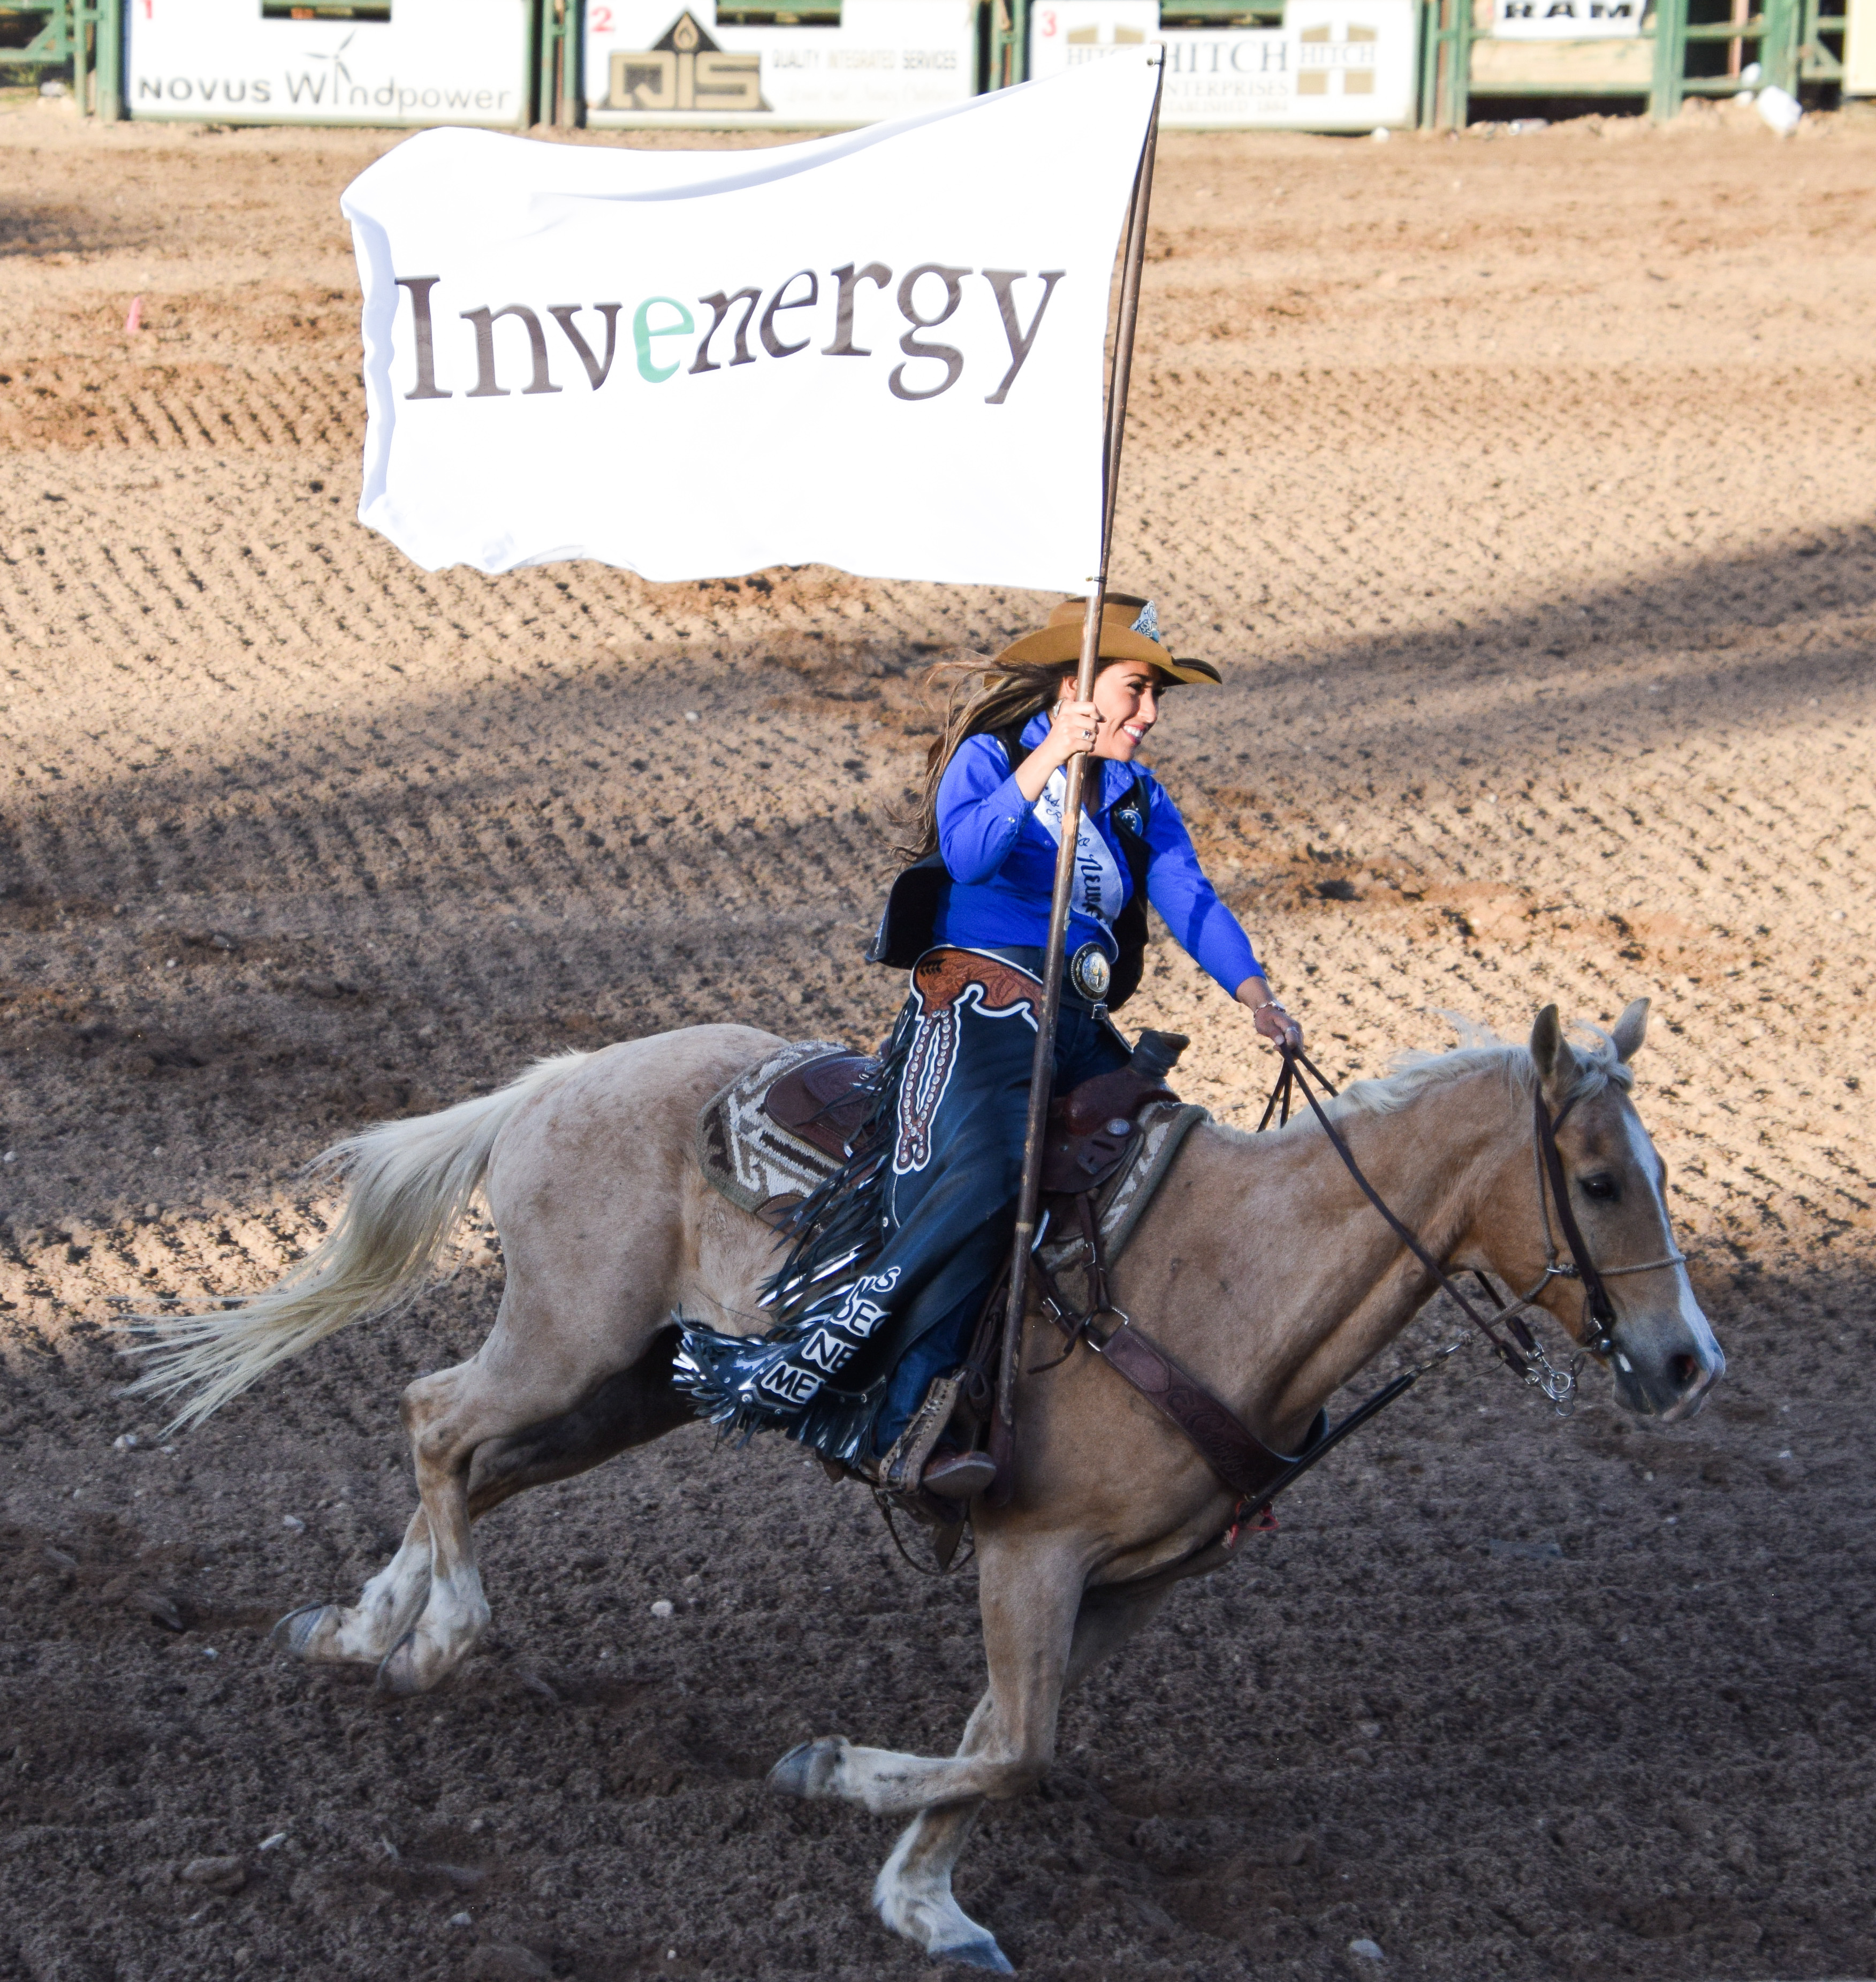 Rodeo-Queen-carrying-the-Invenergy-sponsor-flag.jpg#asset:1989